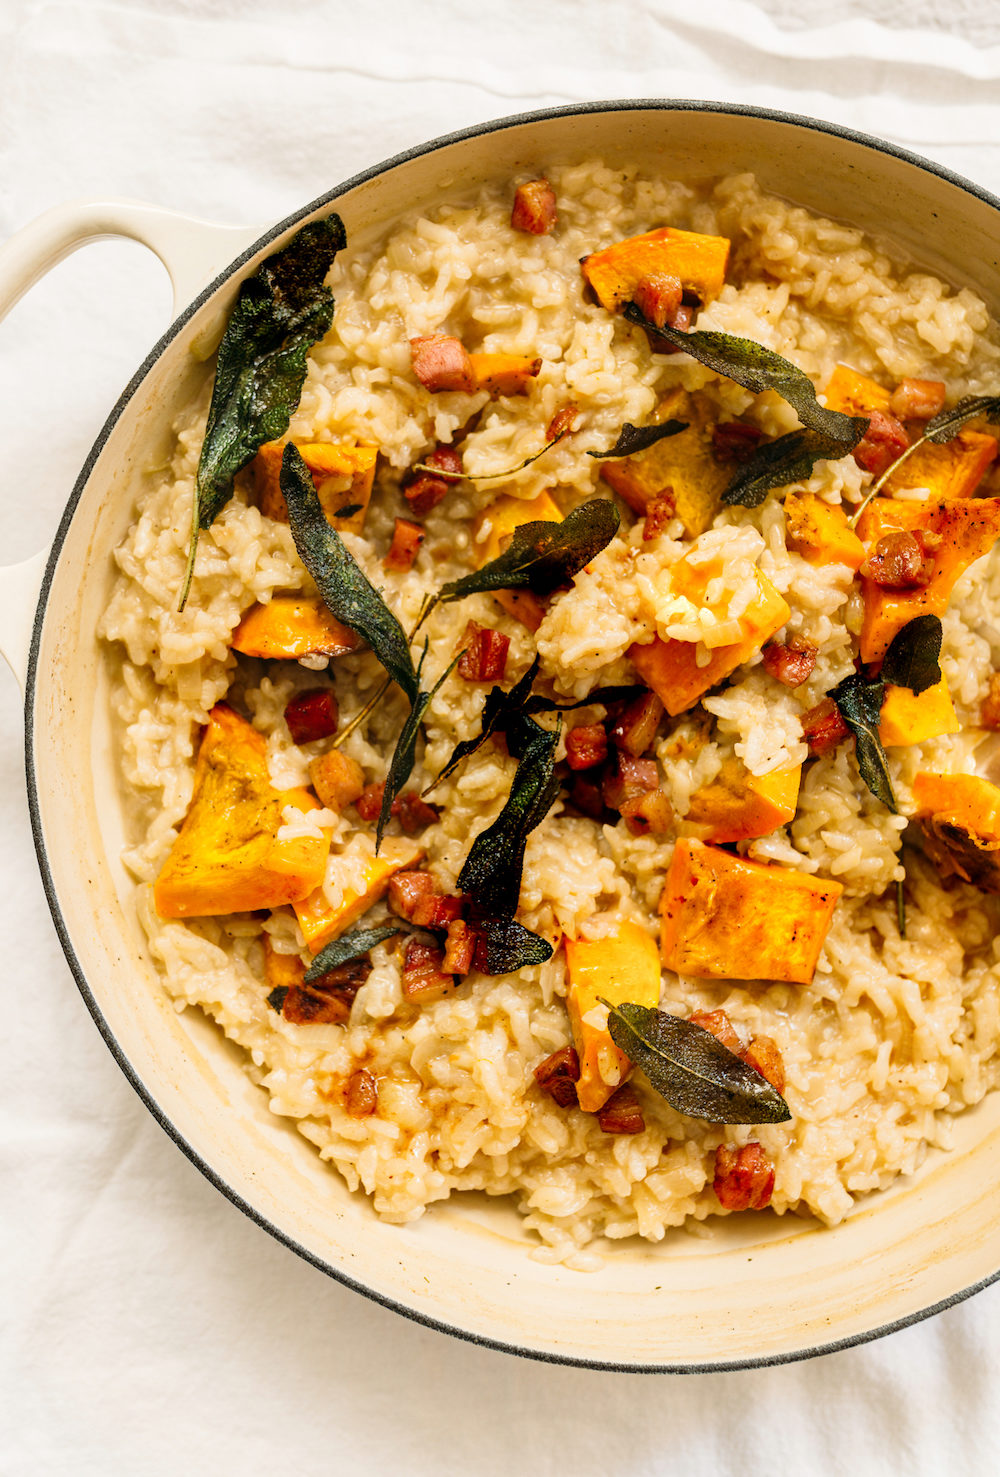 Oven-Baked Squash Risotto Recipes